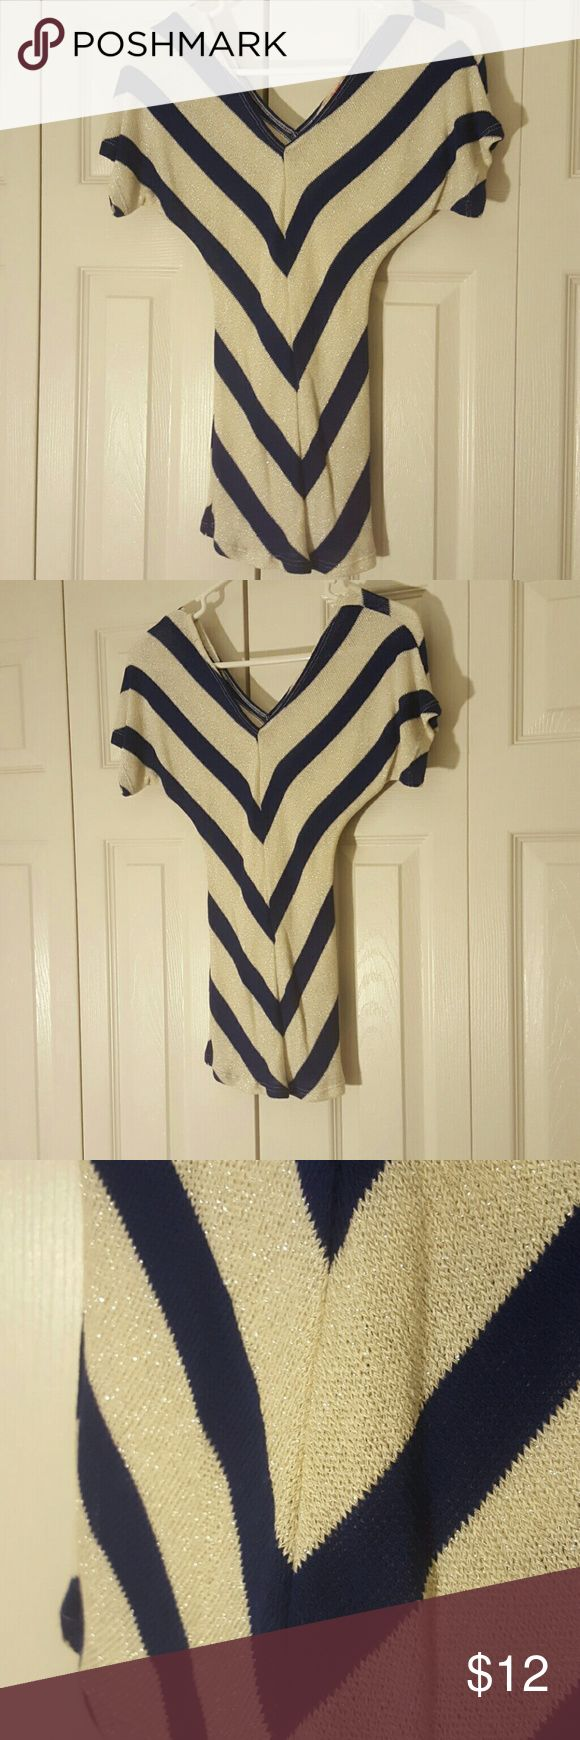 Body Central Knit Top Womens Body Central Knit Top - Blue/Silver - Never Worn Body Central Tops